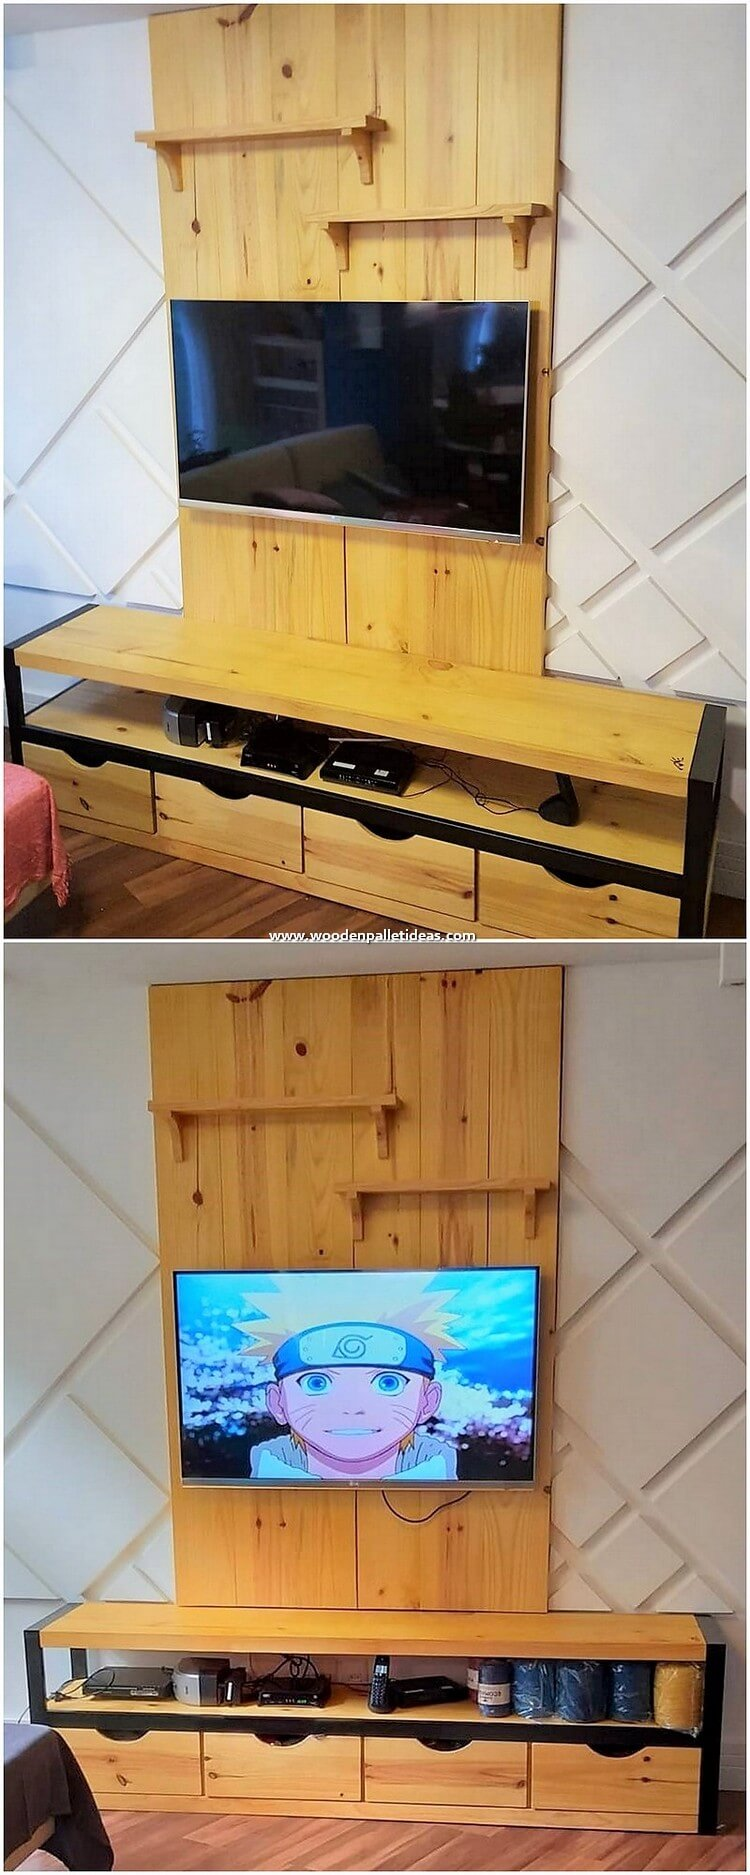 Pallet Wall LED Holder and Media Table